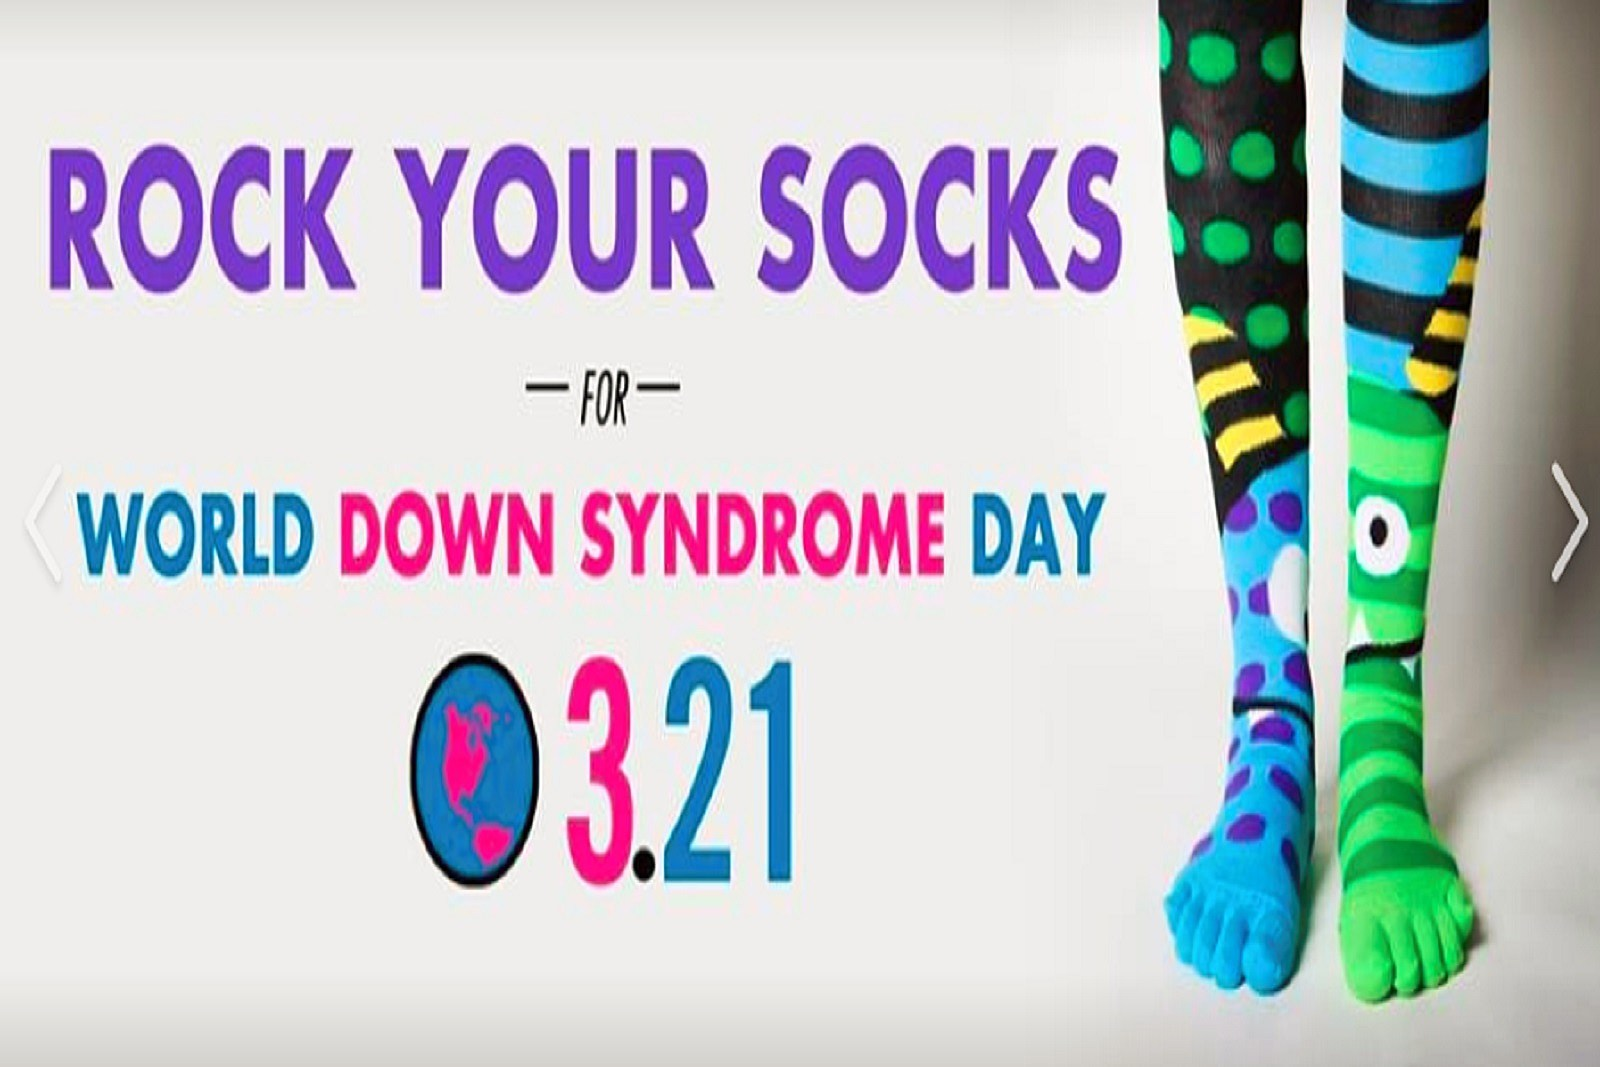 Today is World Down Syndrome Day